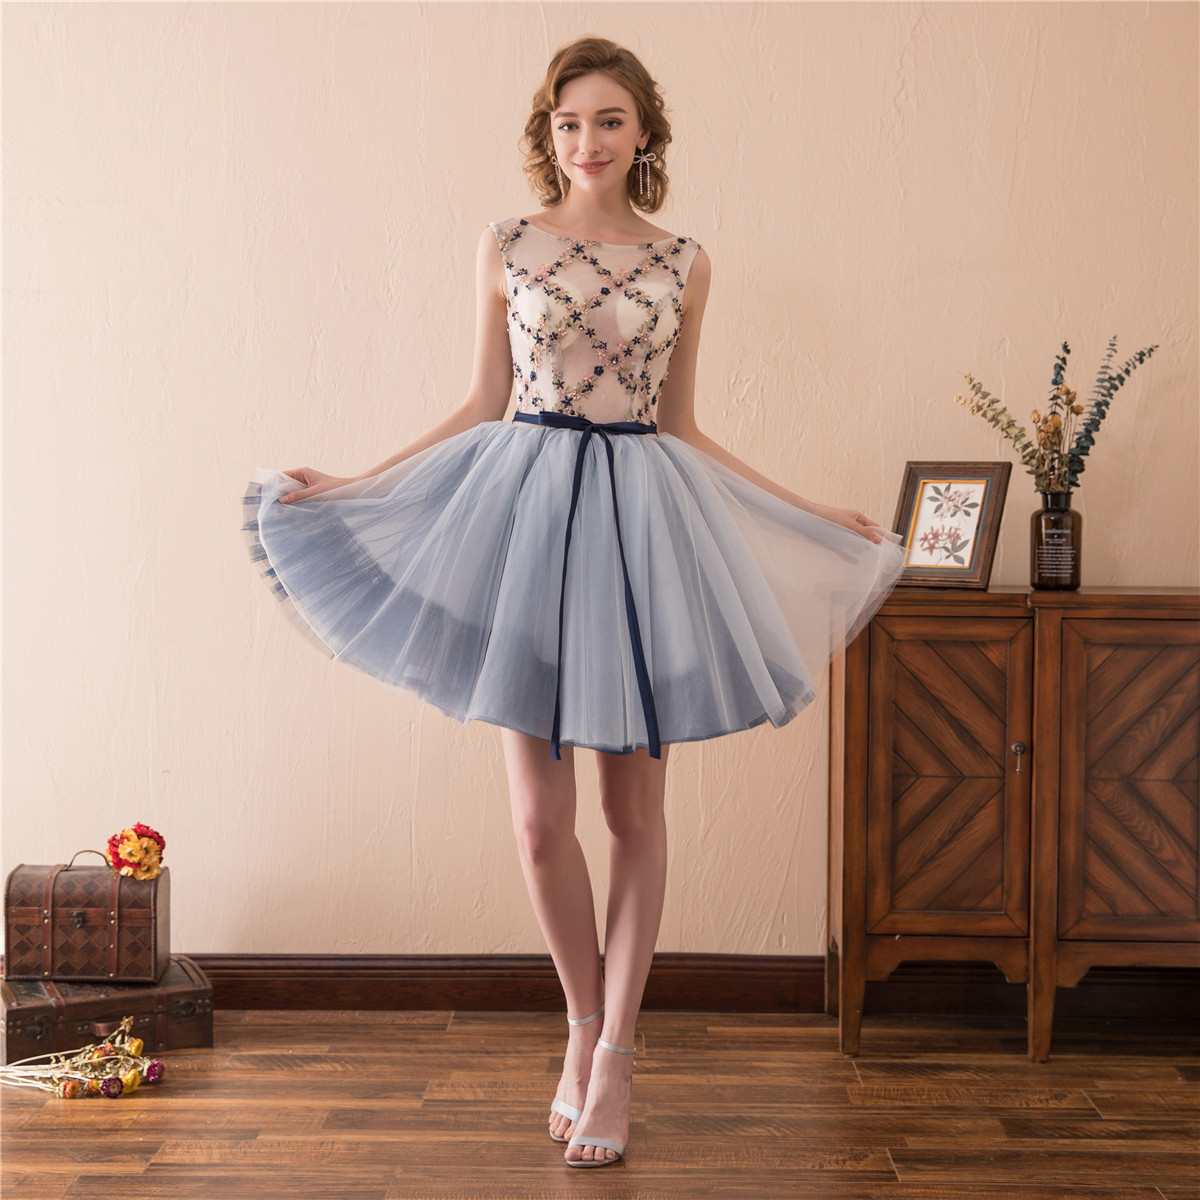 2018 neu mini Abendkleid Blau Cocktailkleid Partykleid Brautjungfer ...